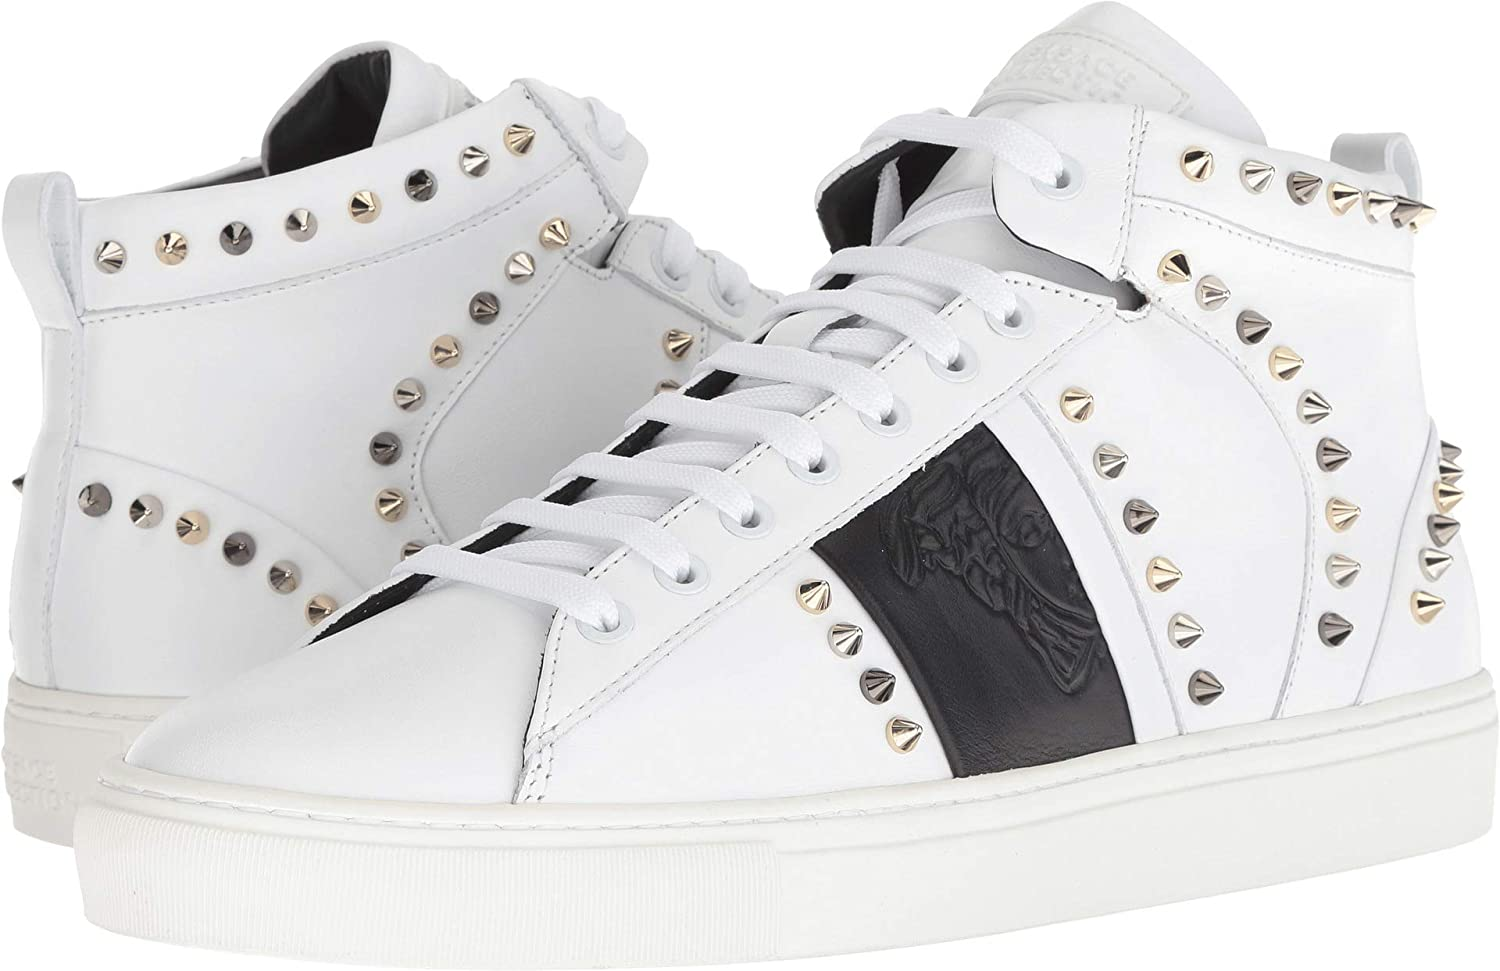 2b6daf80669 Amazon.com: Versace Collection Mens Spiked High Top Sneaker: Shoes